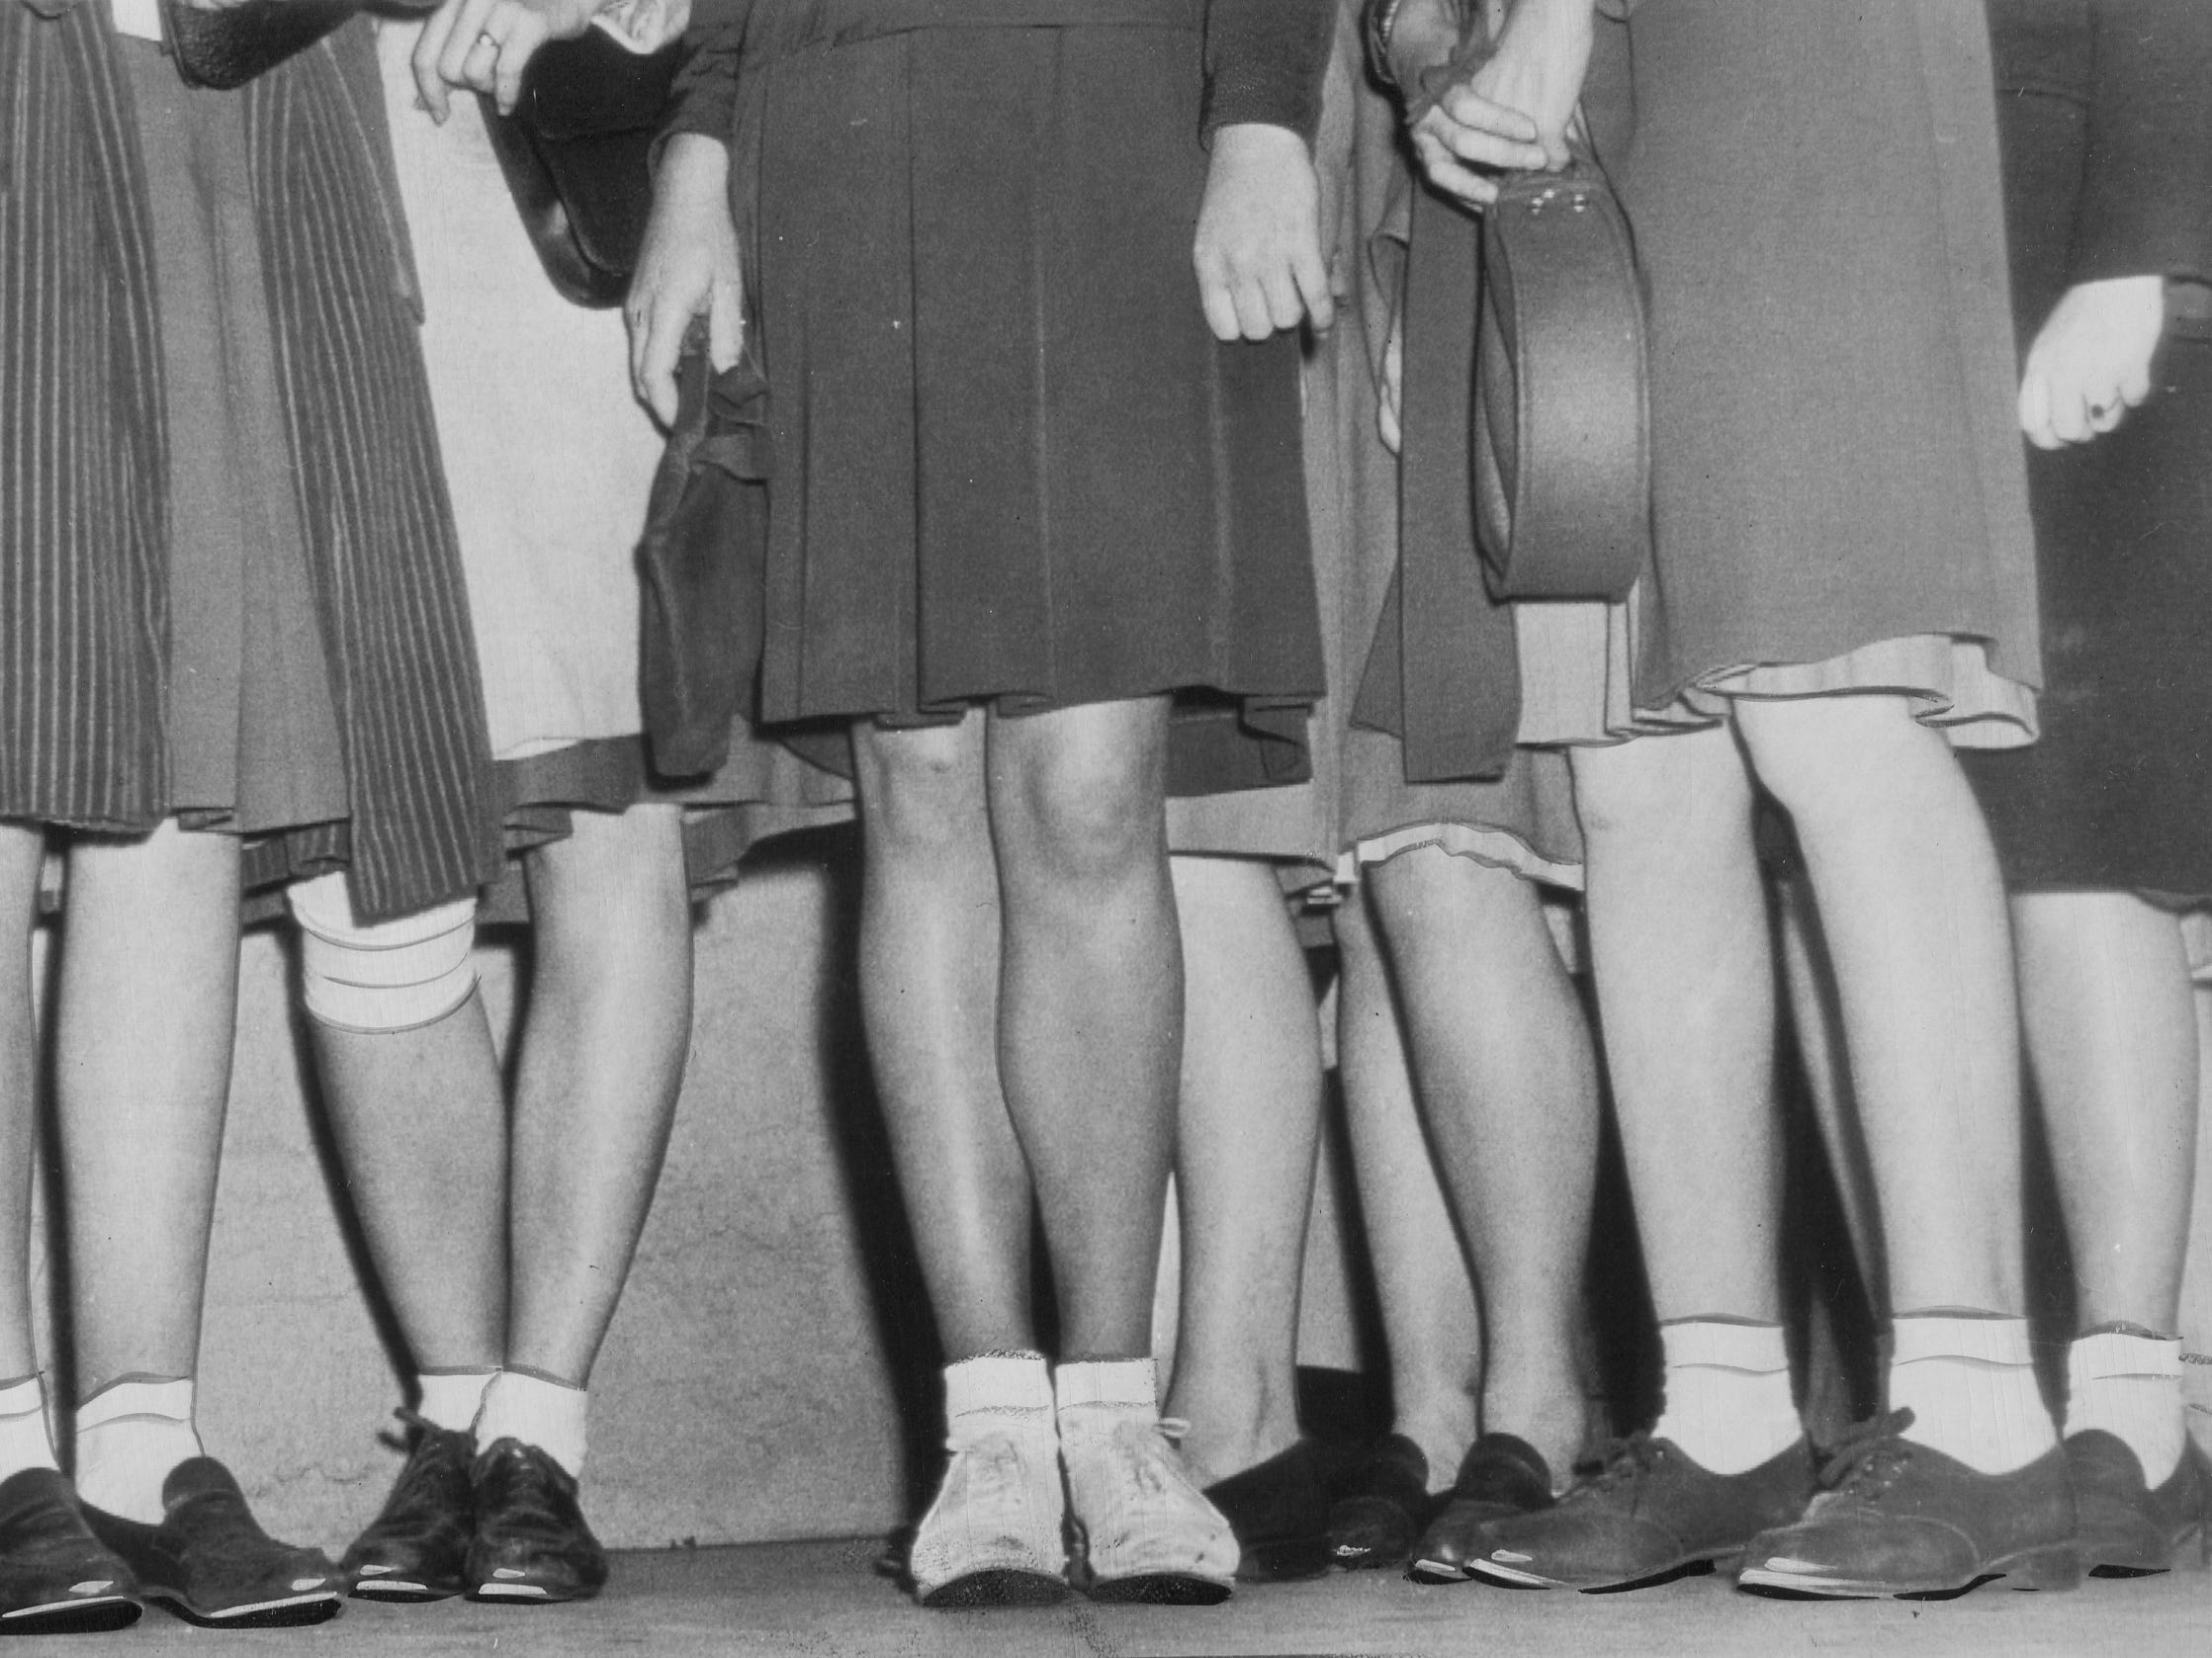 With nylon production channeled into the war effort for parachutes, ropes, mosquito netting, etc., women had to find an alternative for nylon stockings.  The bobby sox craze was born, and would last for another decade.